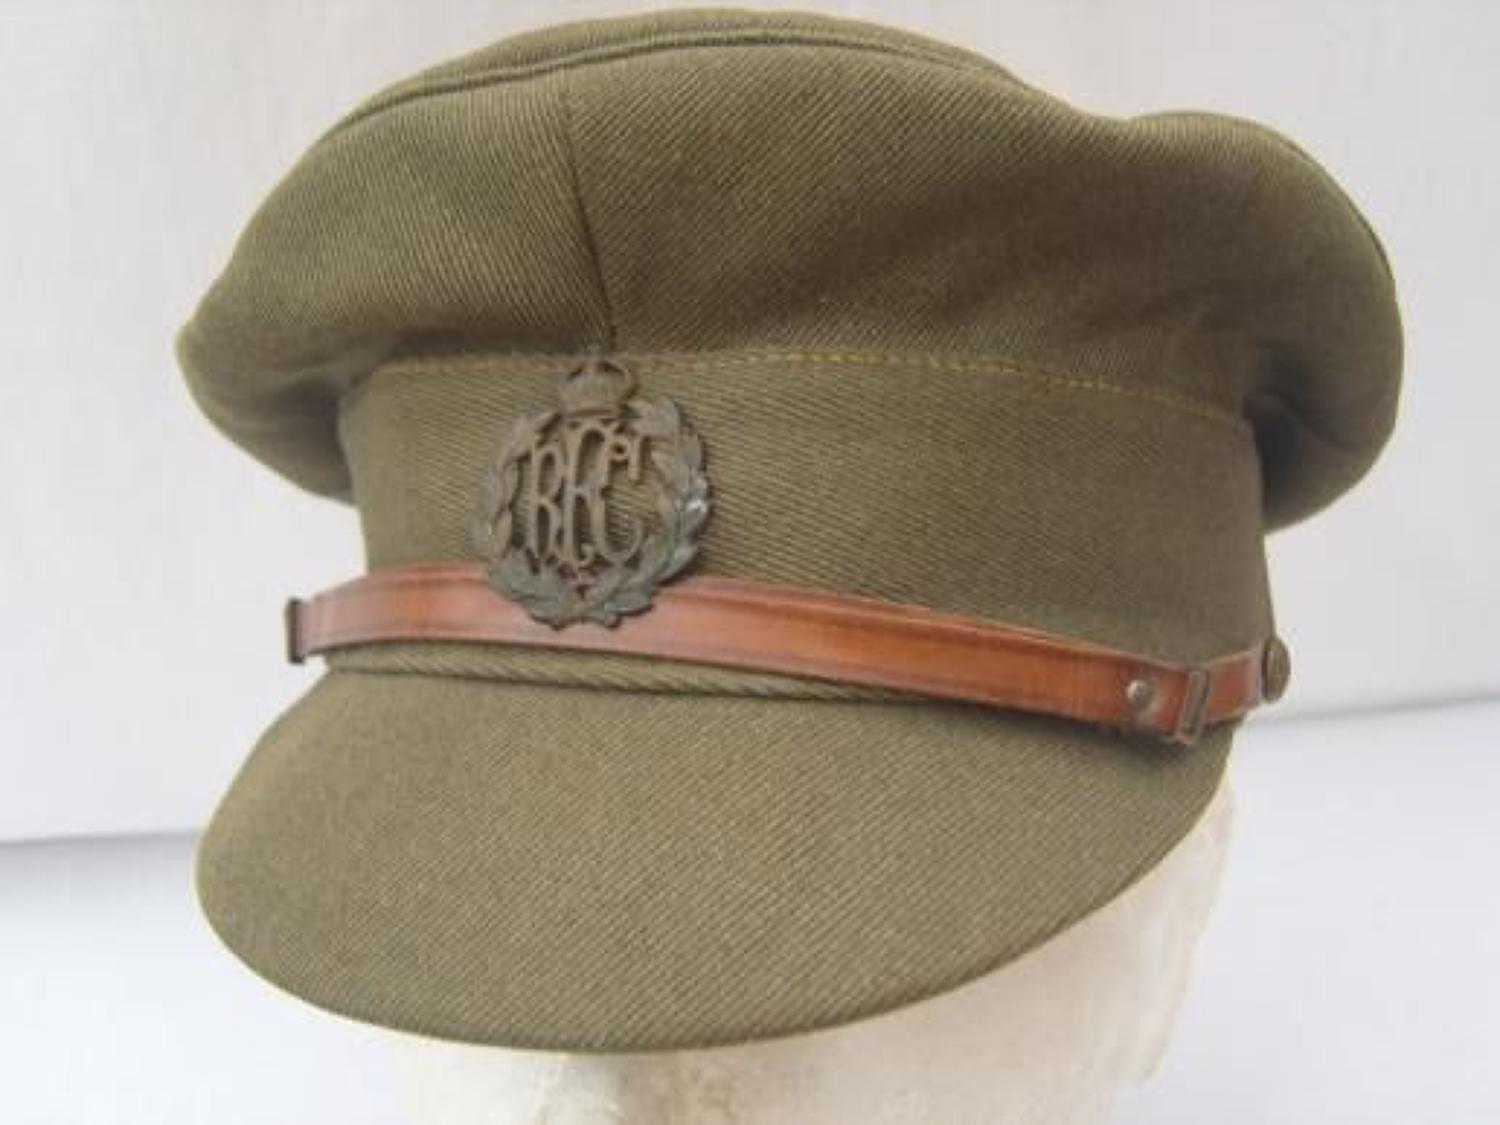 WW1 ROYAL FLYING CORPS CASUALTY OFFICERS FLOPPY CAP